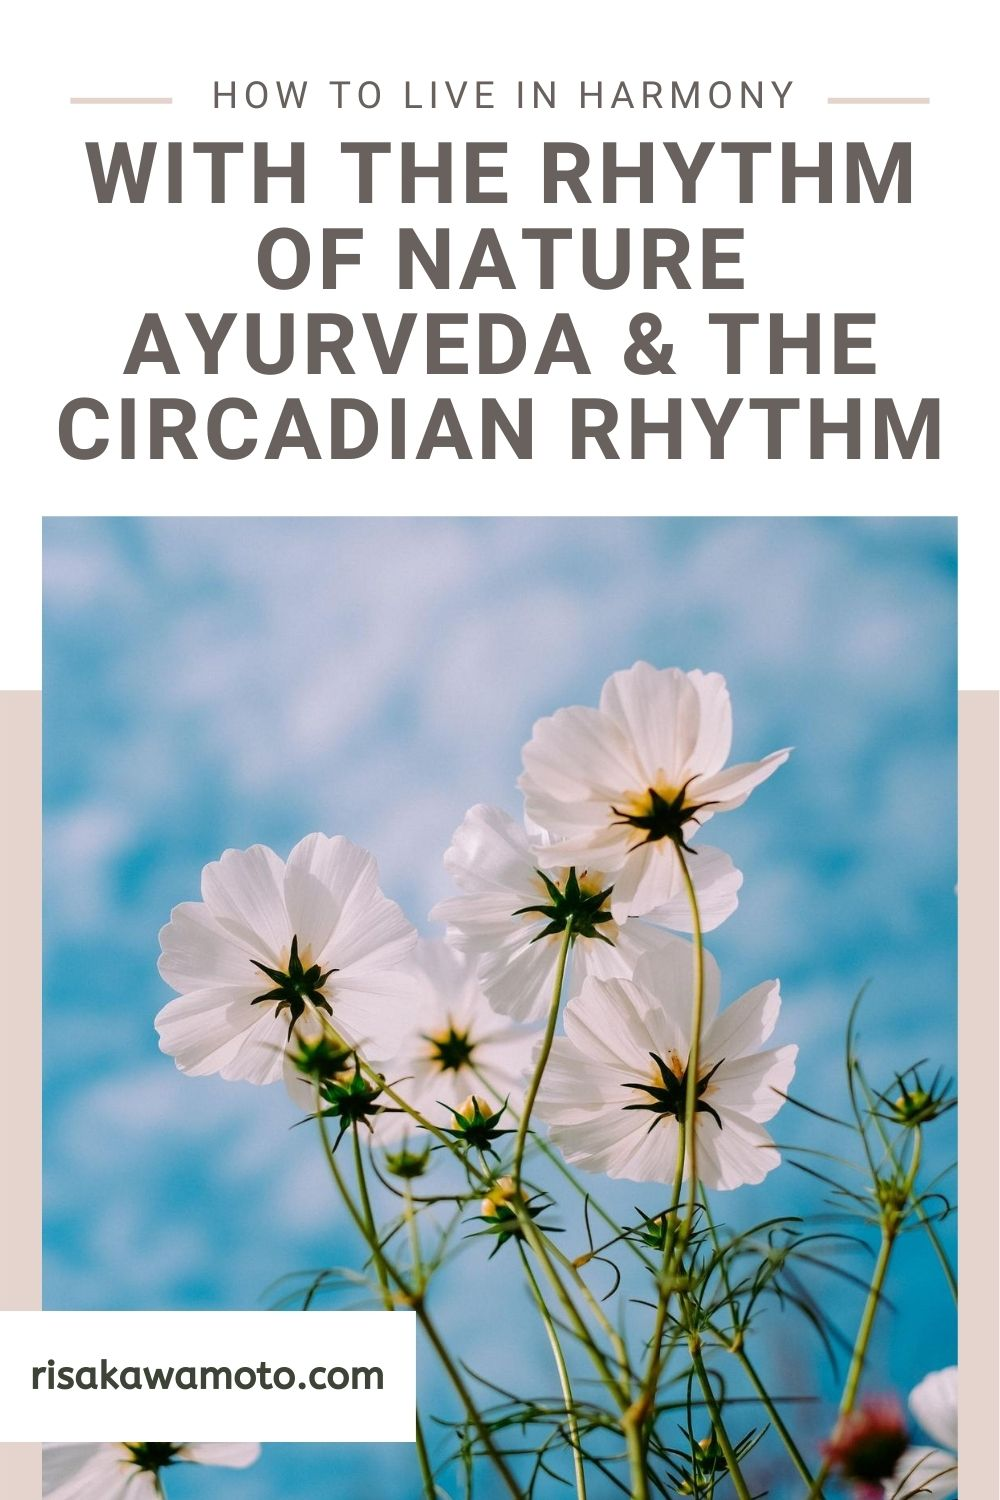 How to Live in Harmony with the Rhythm of Nature - Ayurveda & The Circadian Rhythms